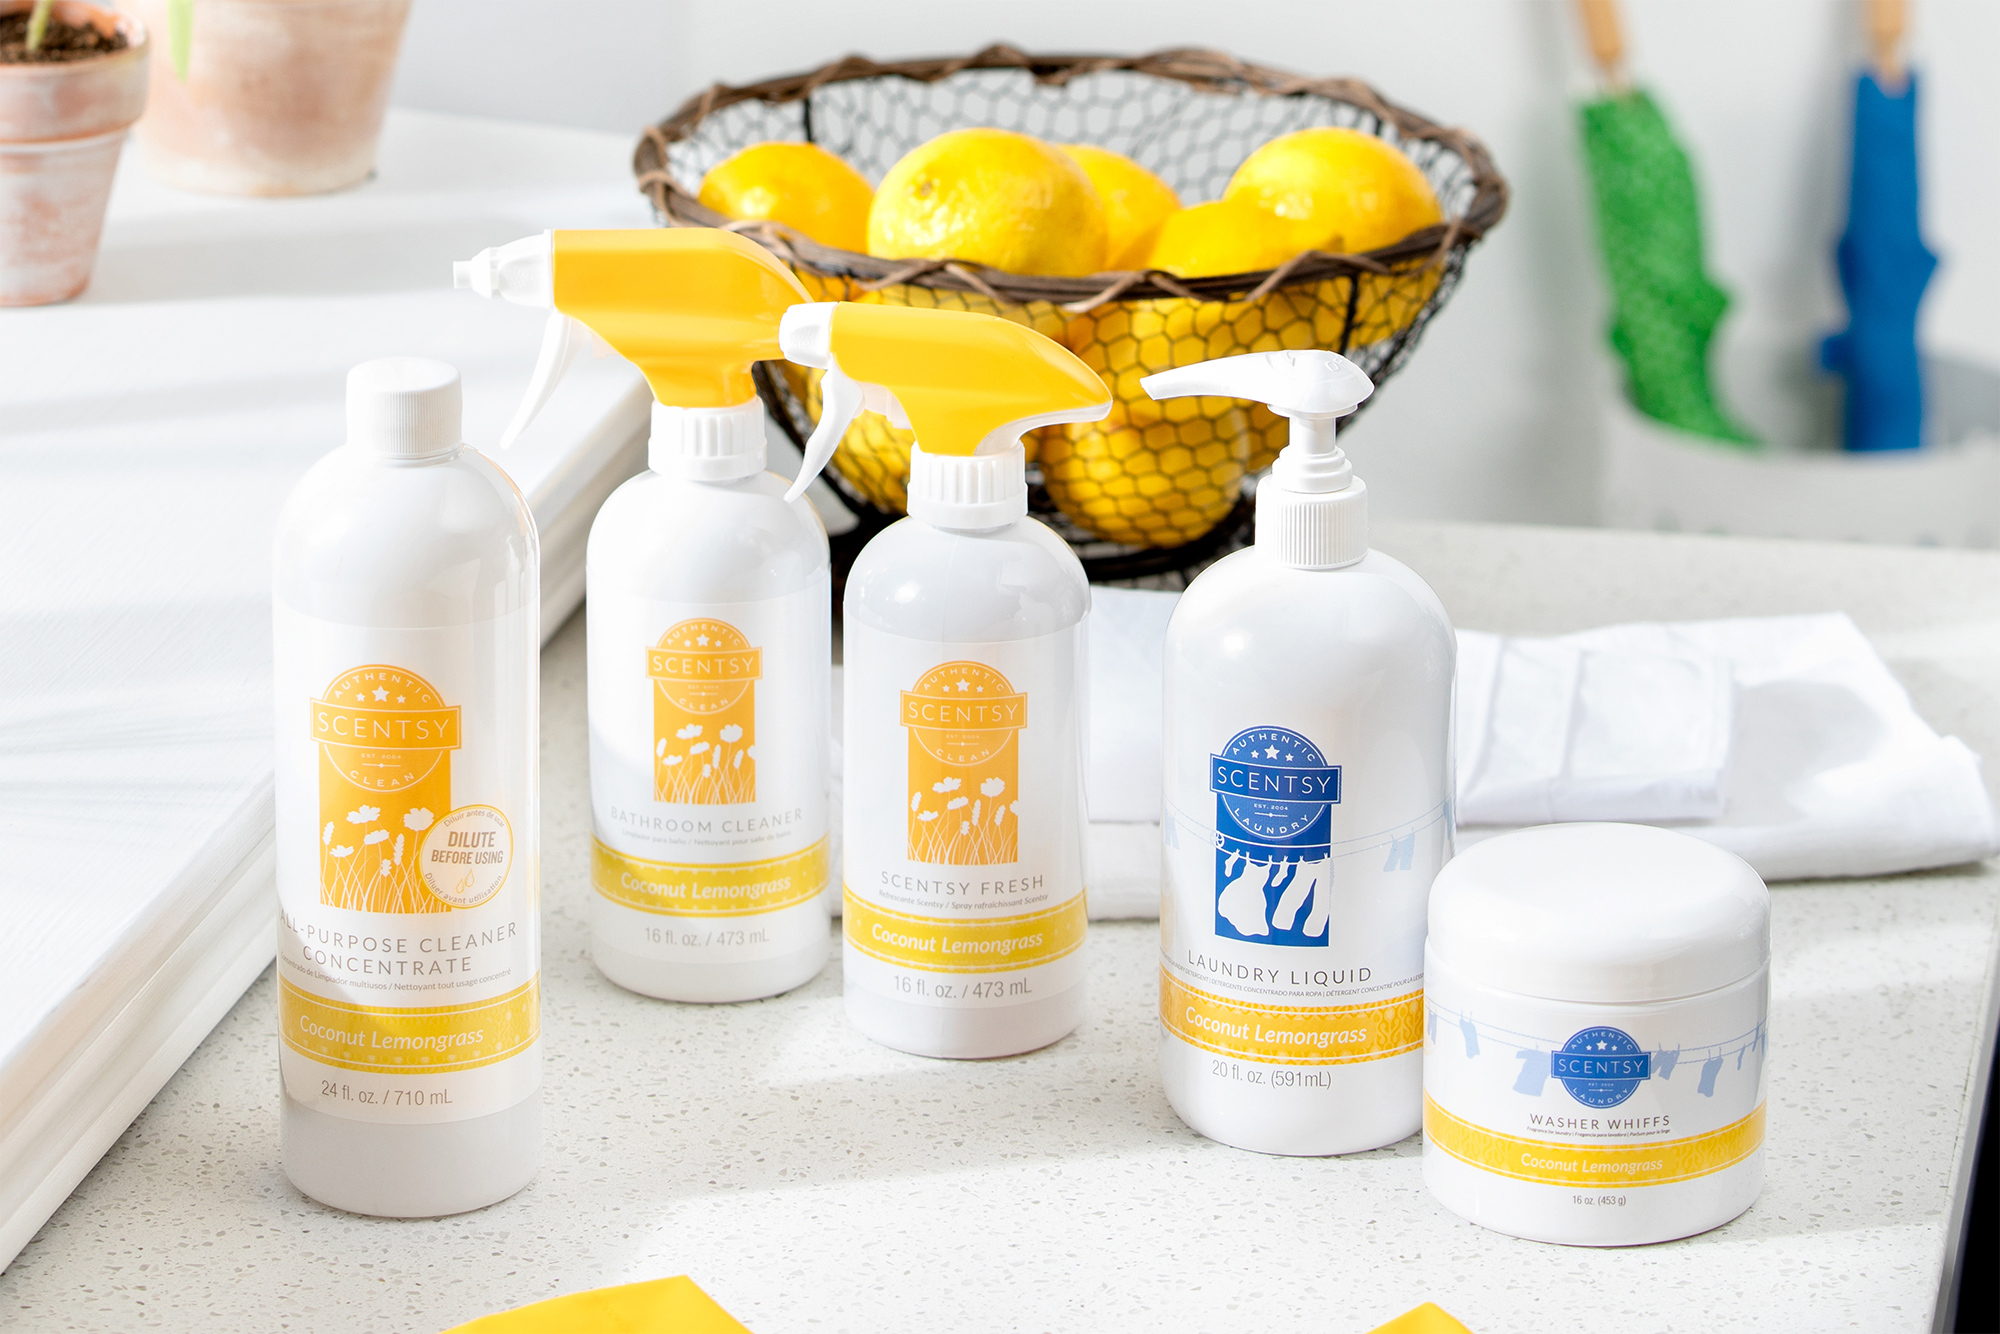 Scentsy clean products in the scent Coconut Lemongrass